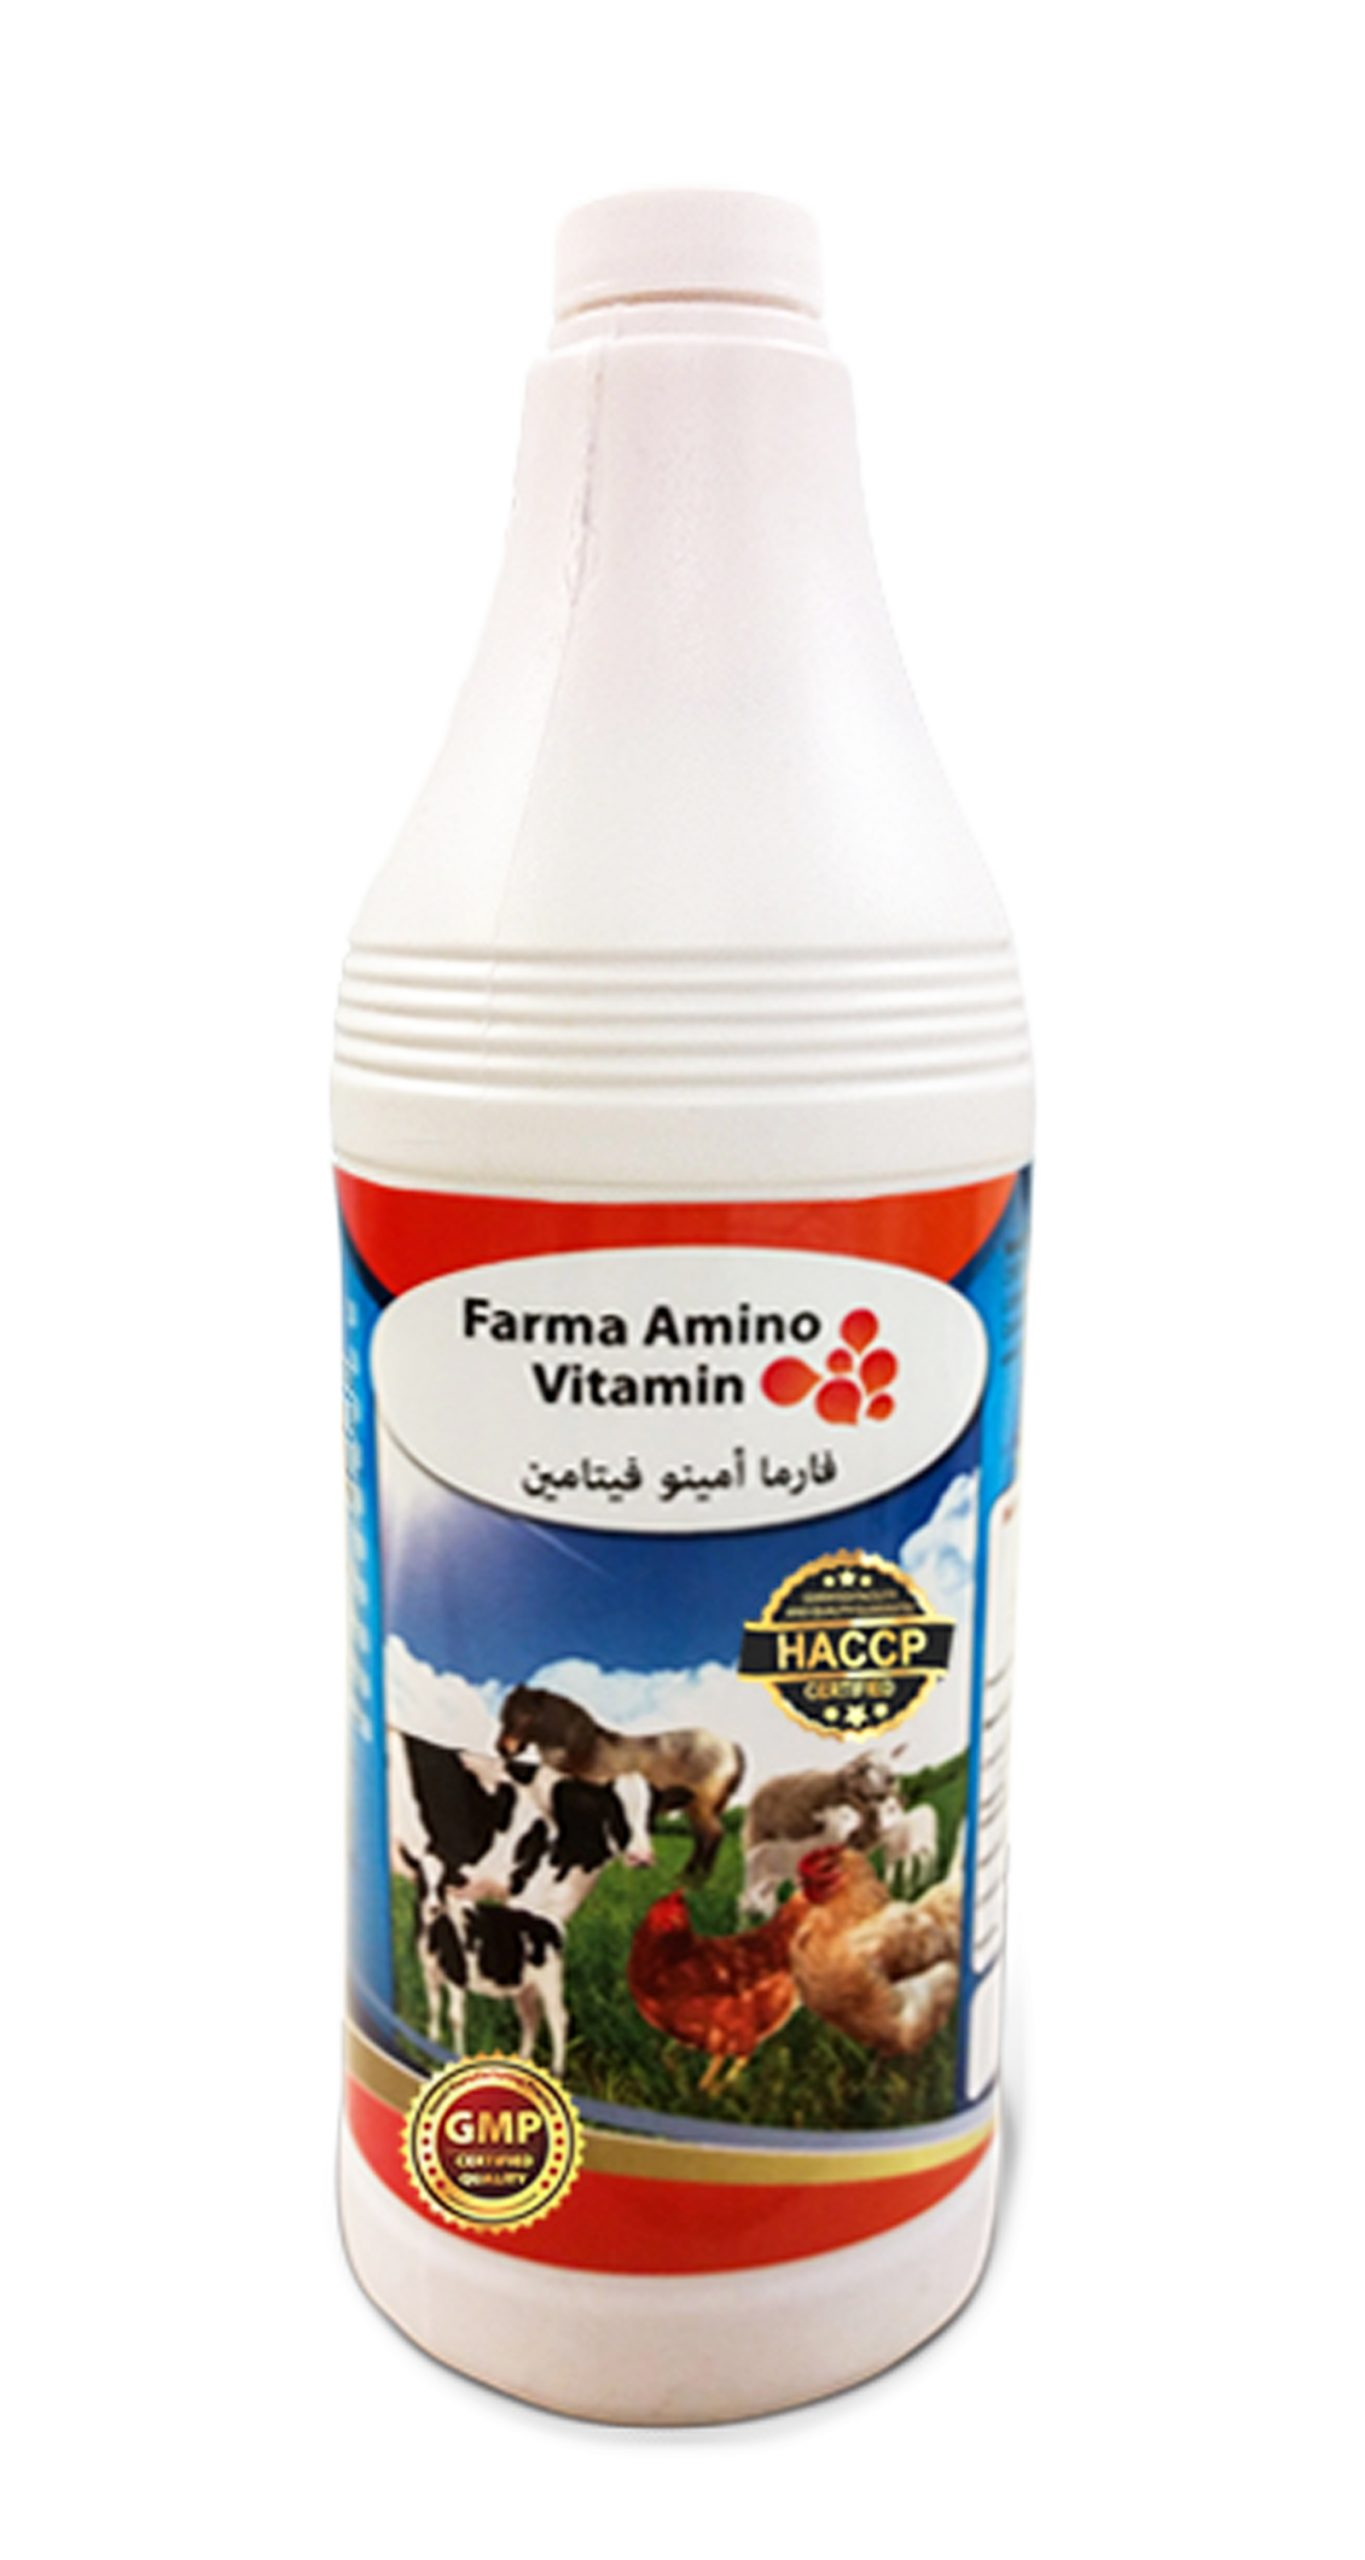 feed additives for animals